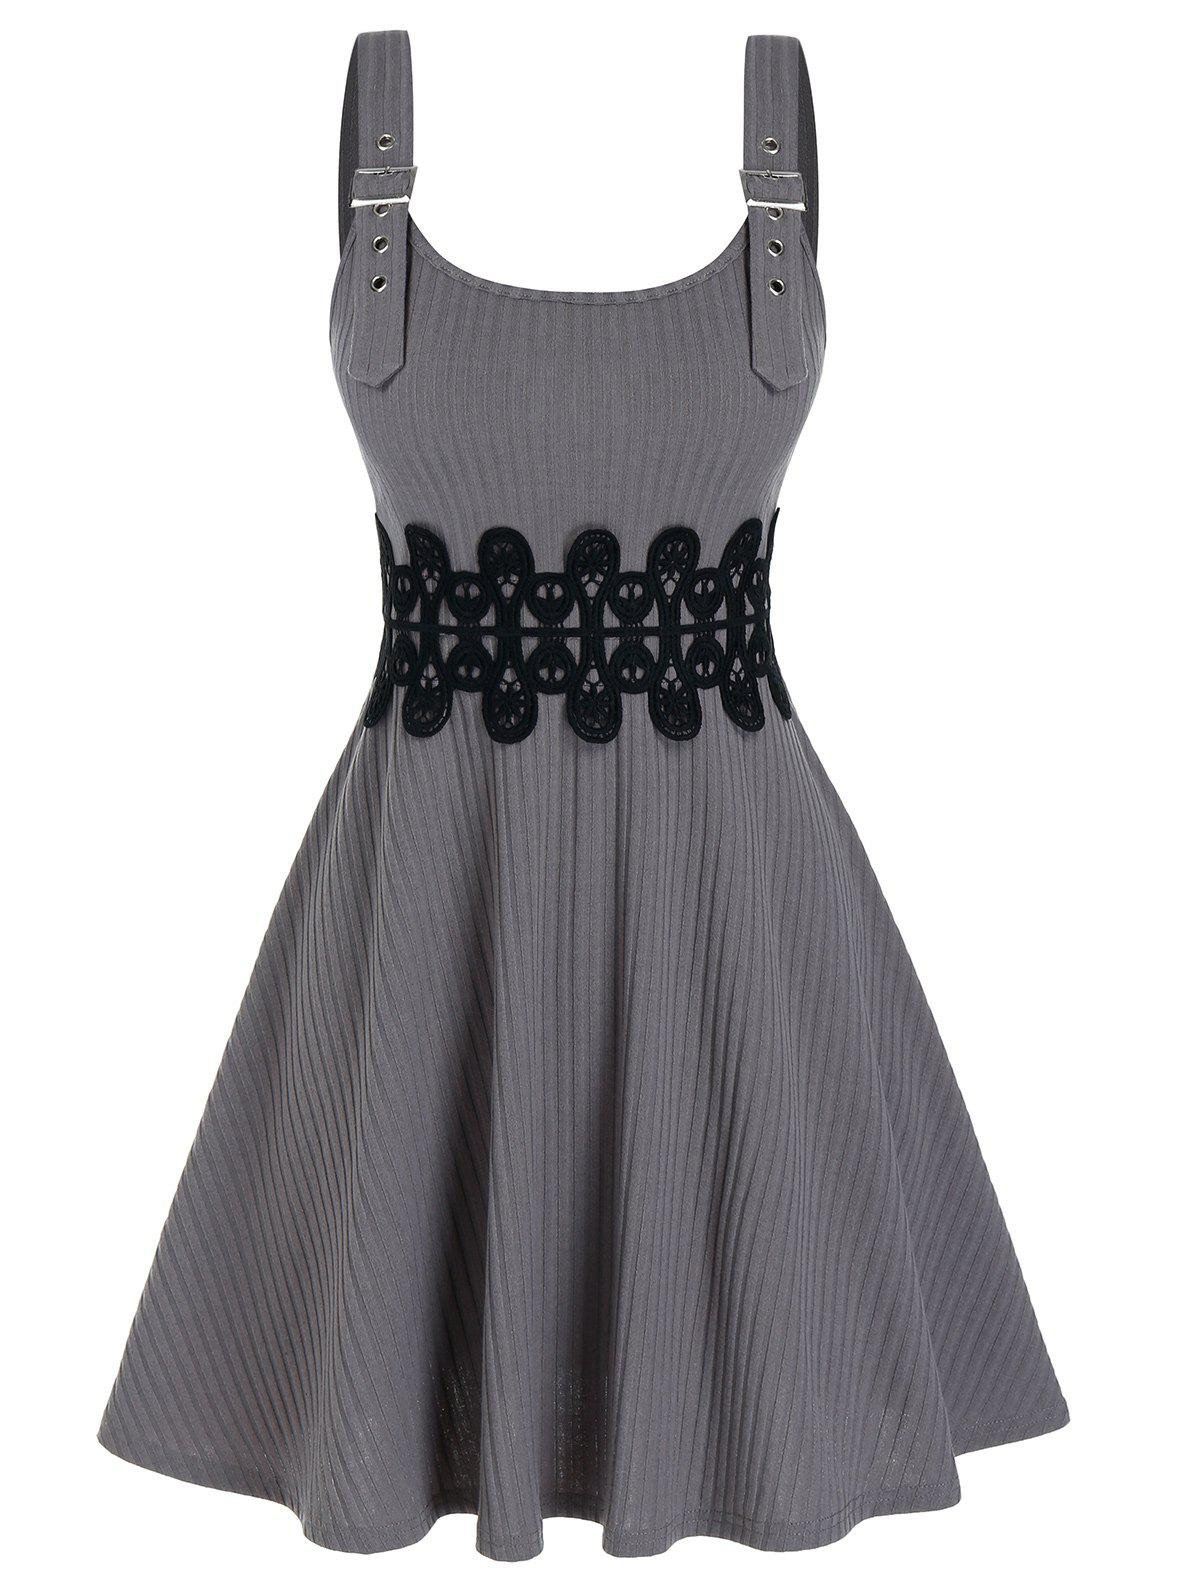 Lace Panel Buckle Strap Knitted Cami A Line Dress - LIGHT GRAY 3XL